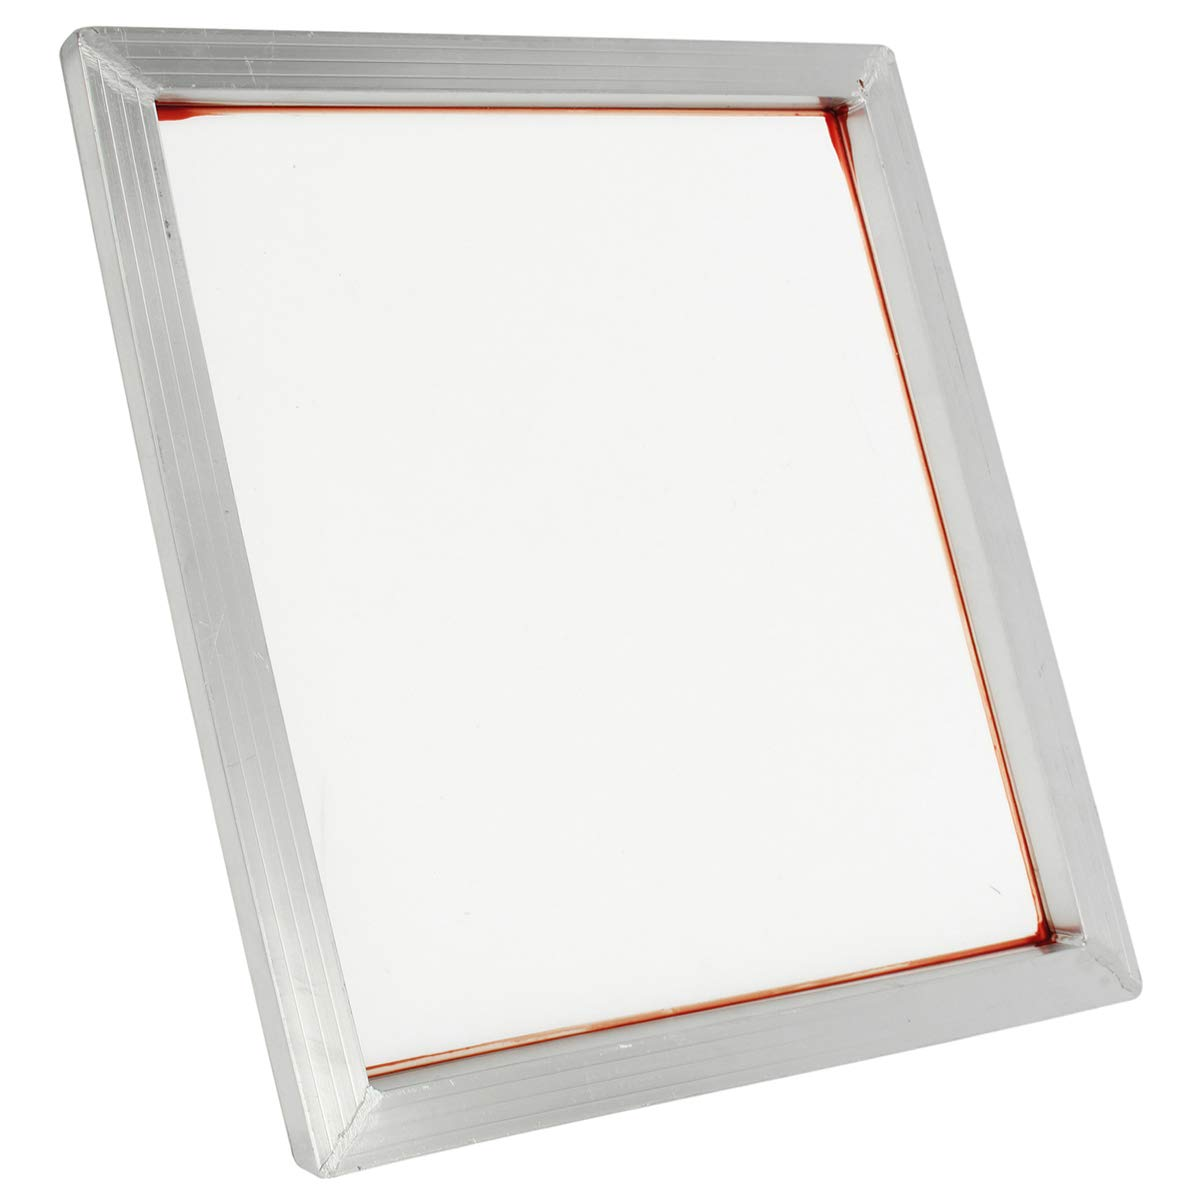 20 x 24 Pre-Stretched Aluminum Silk Screen Printing Frames with 110 tpi White Mesh 6 Pack